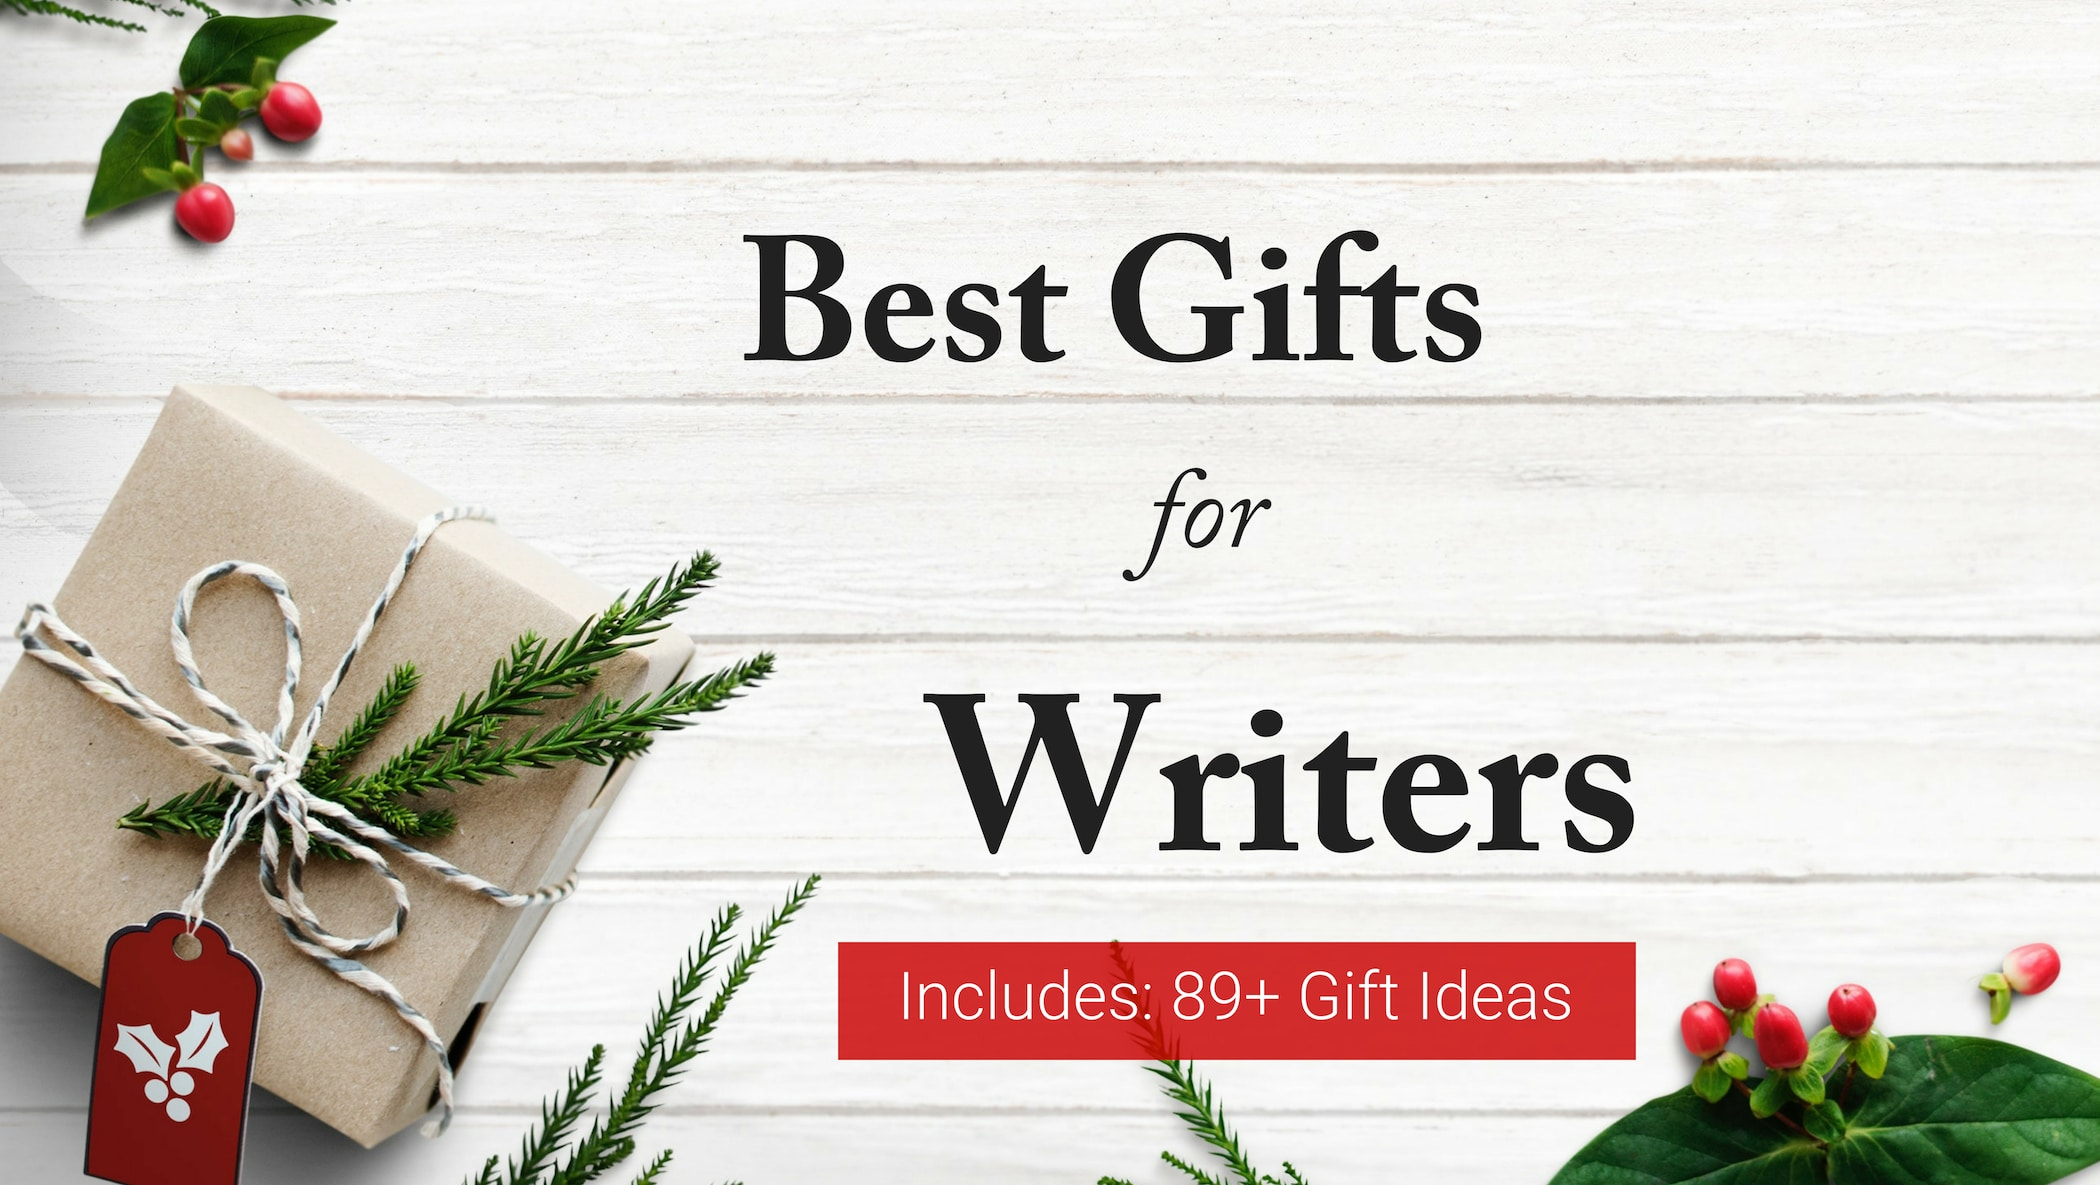 89+ outstanding gift ideas for writers and storytellers - p. s.